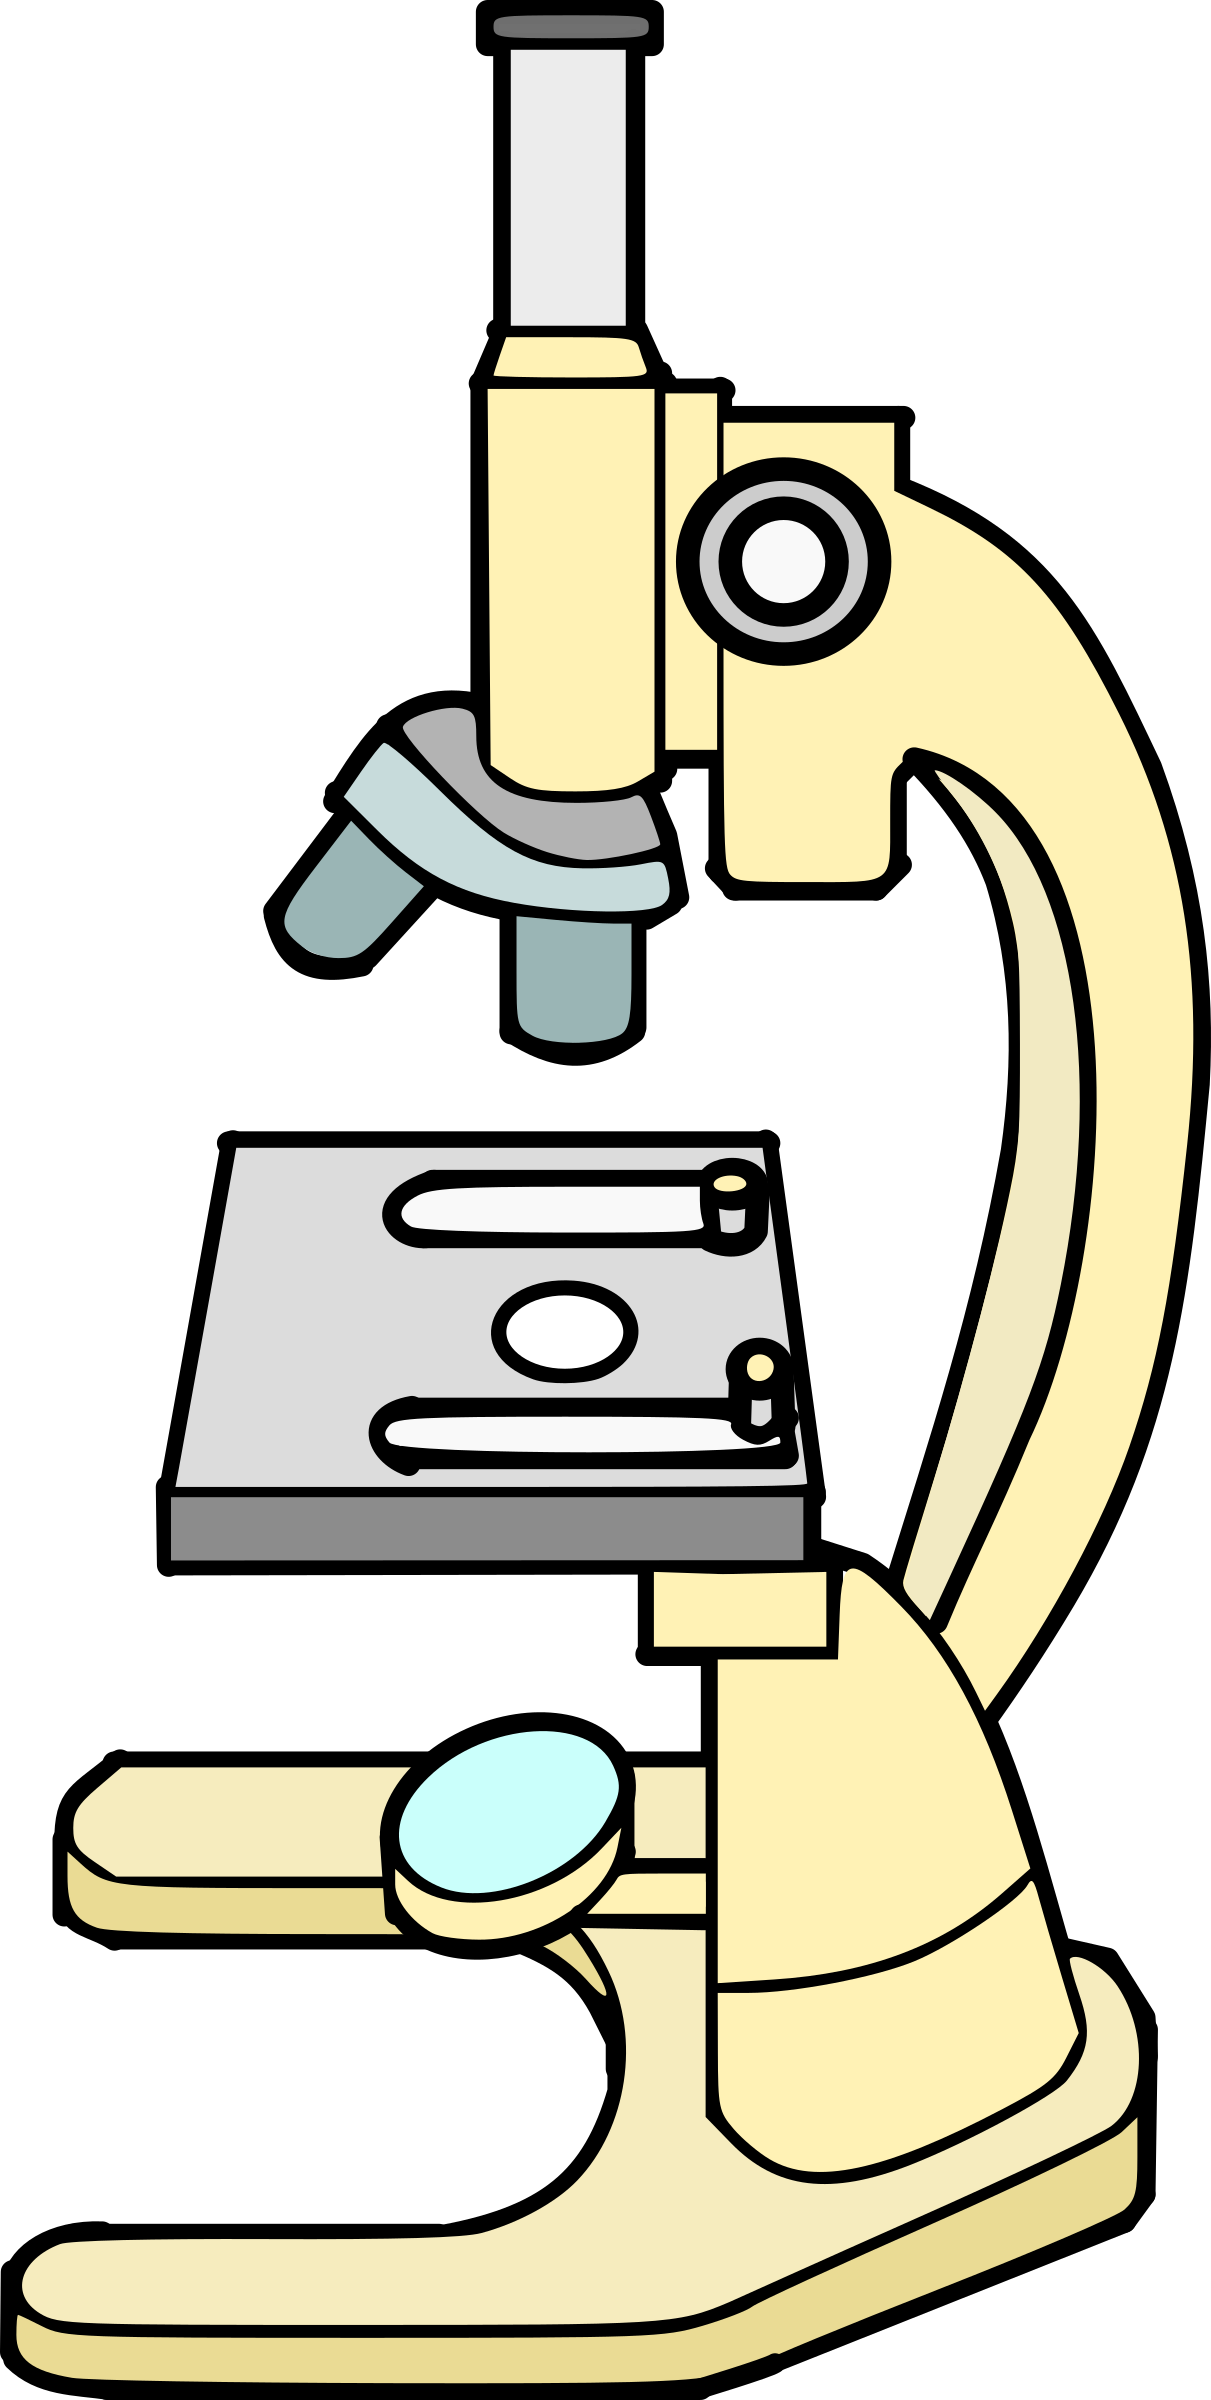 Scientist clipart microscope. Big image png